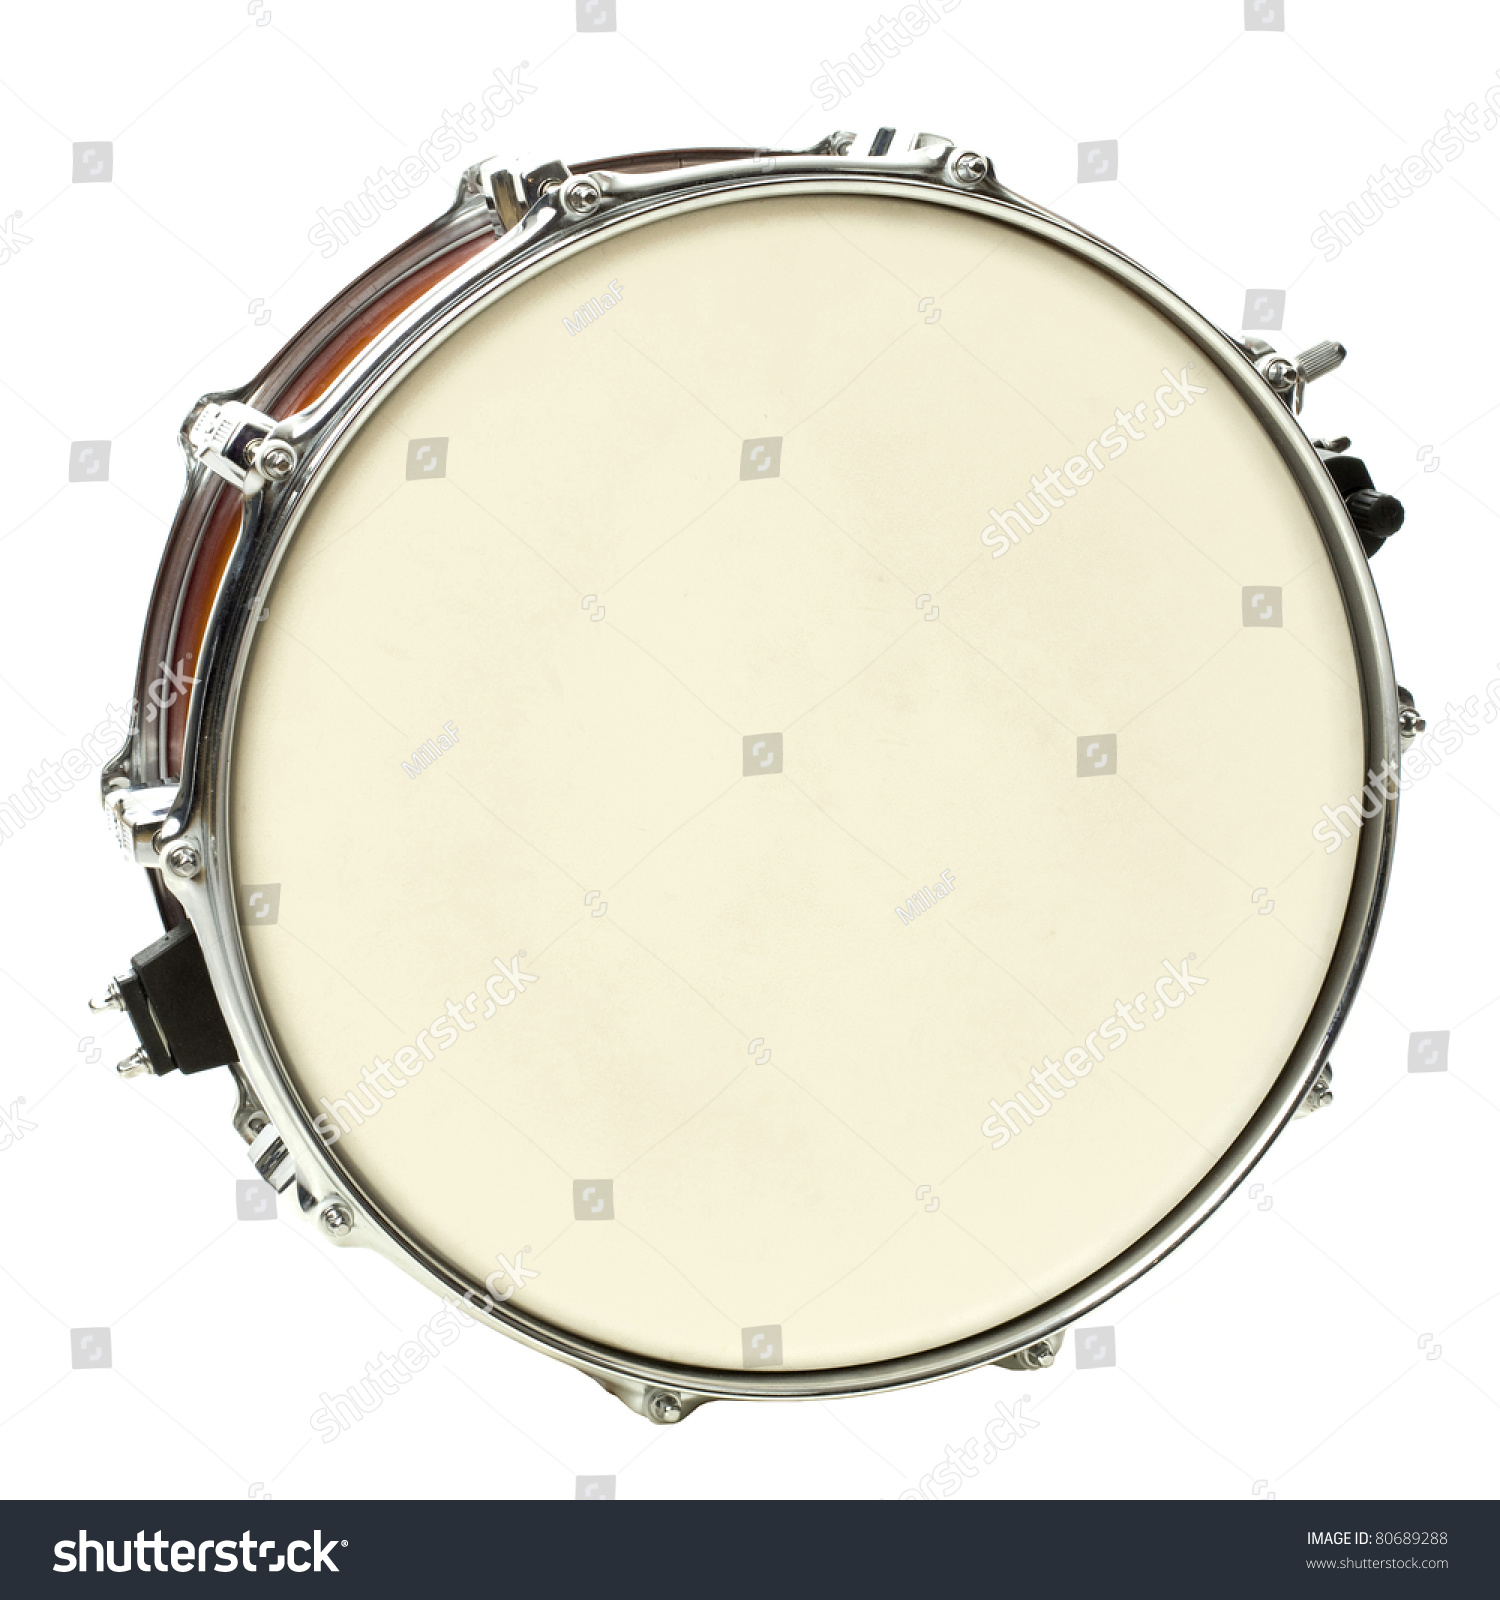 Image Of Drum Under The White Background Ez Canvas Snare Photography For Diagram